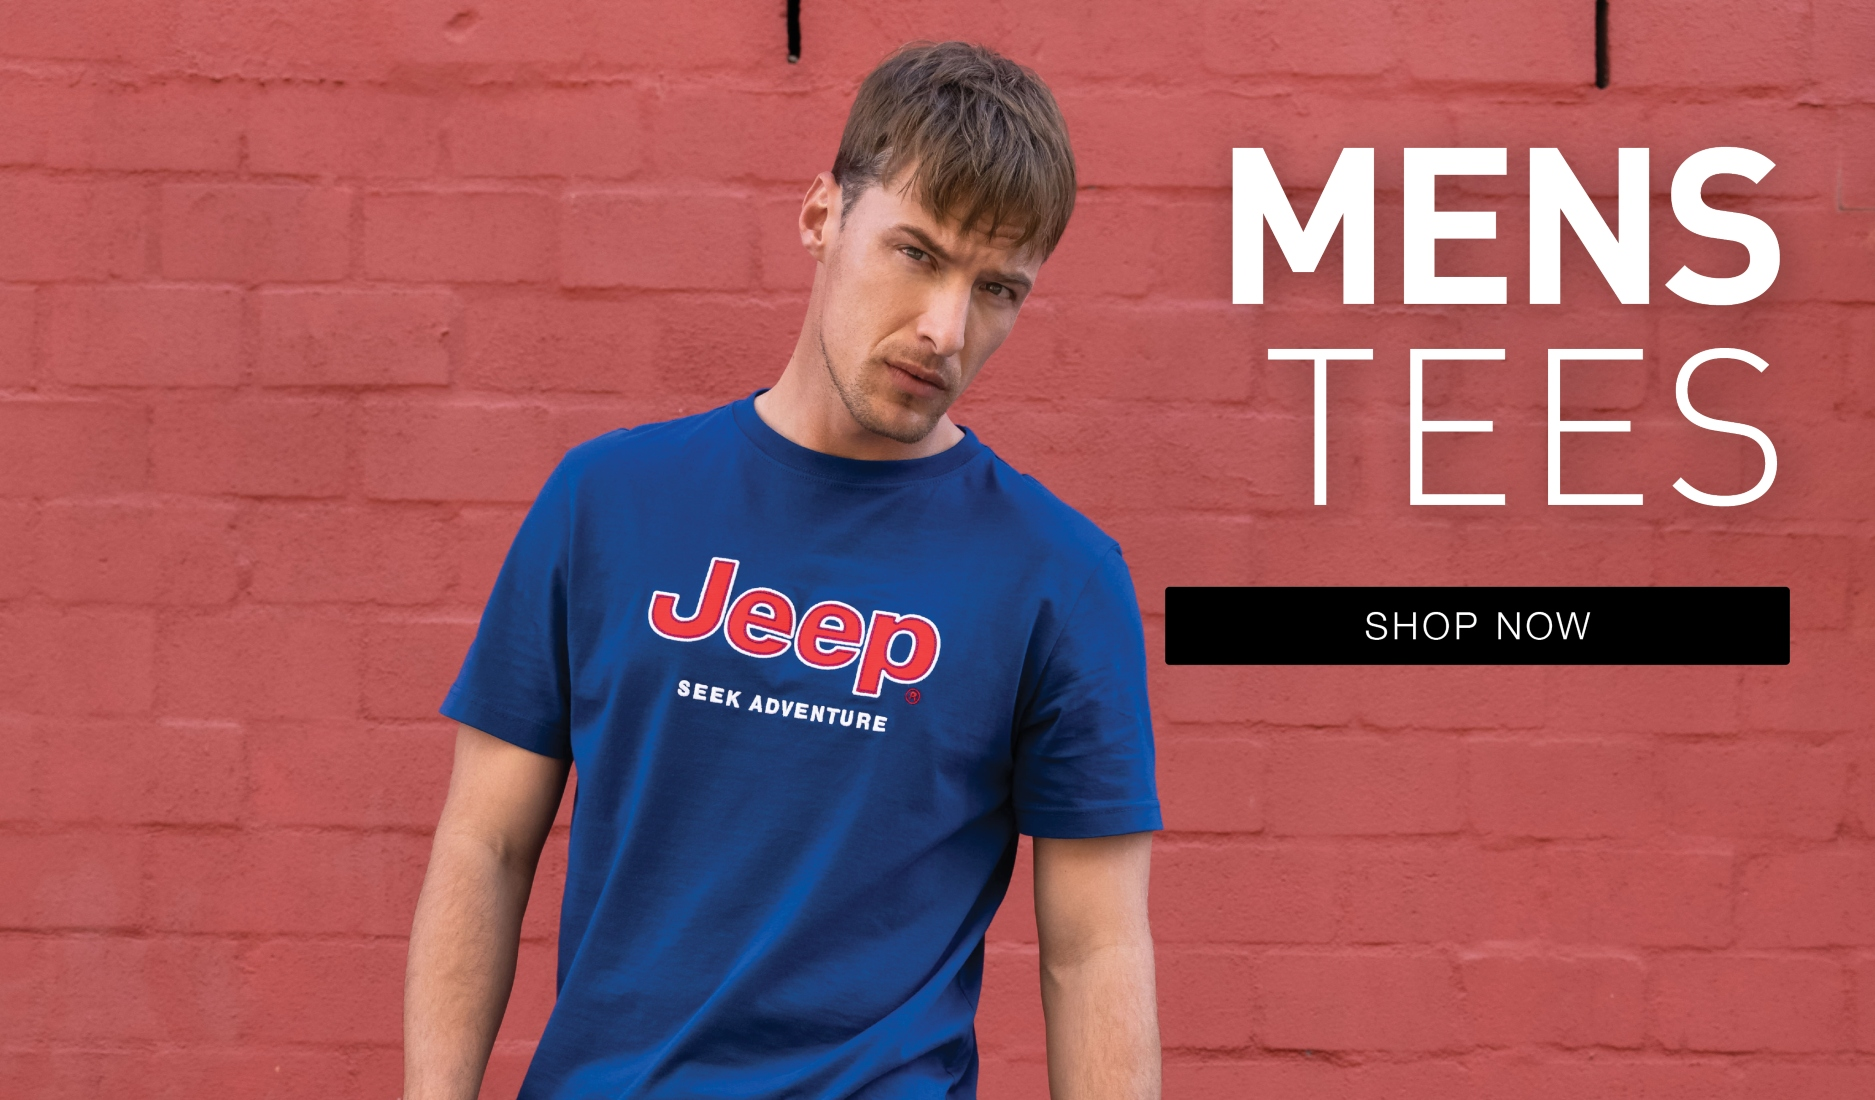 Gender_2nd_Banners_-_mens_tees-resized-new